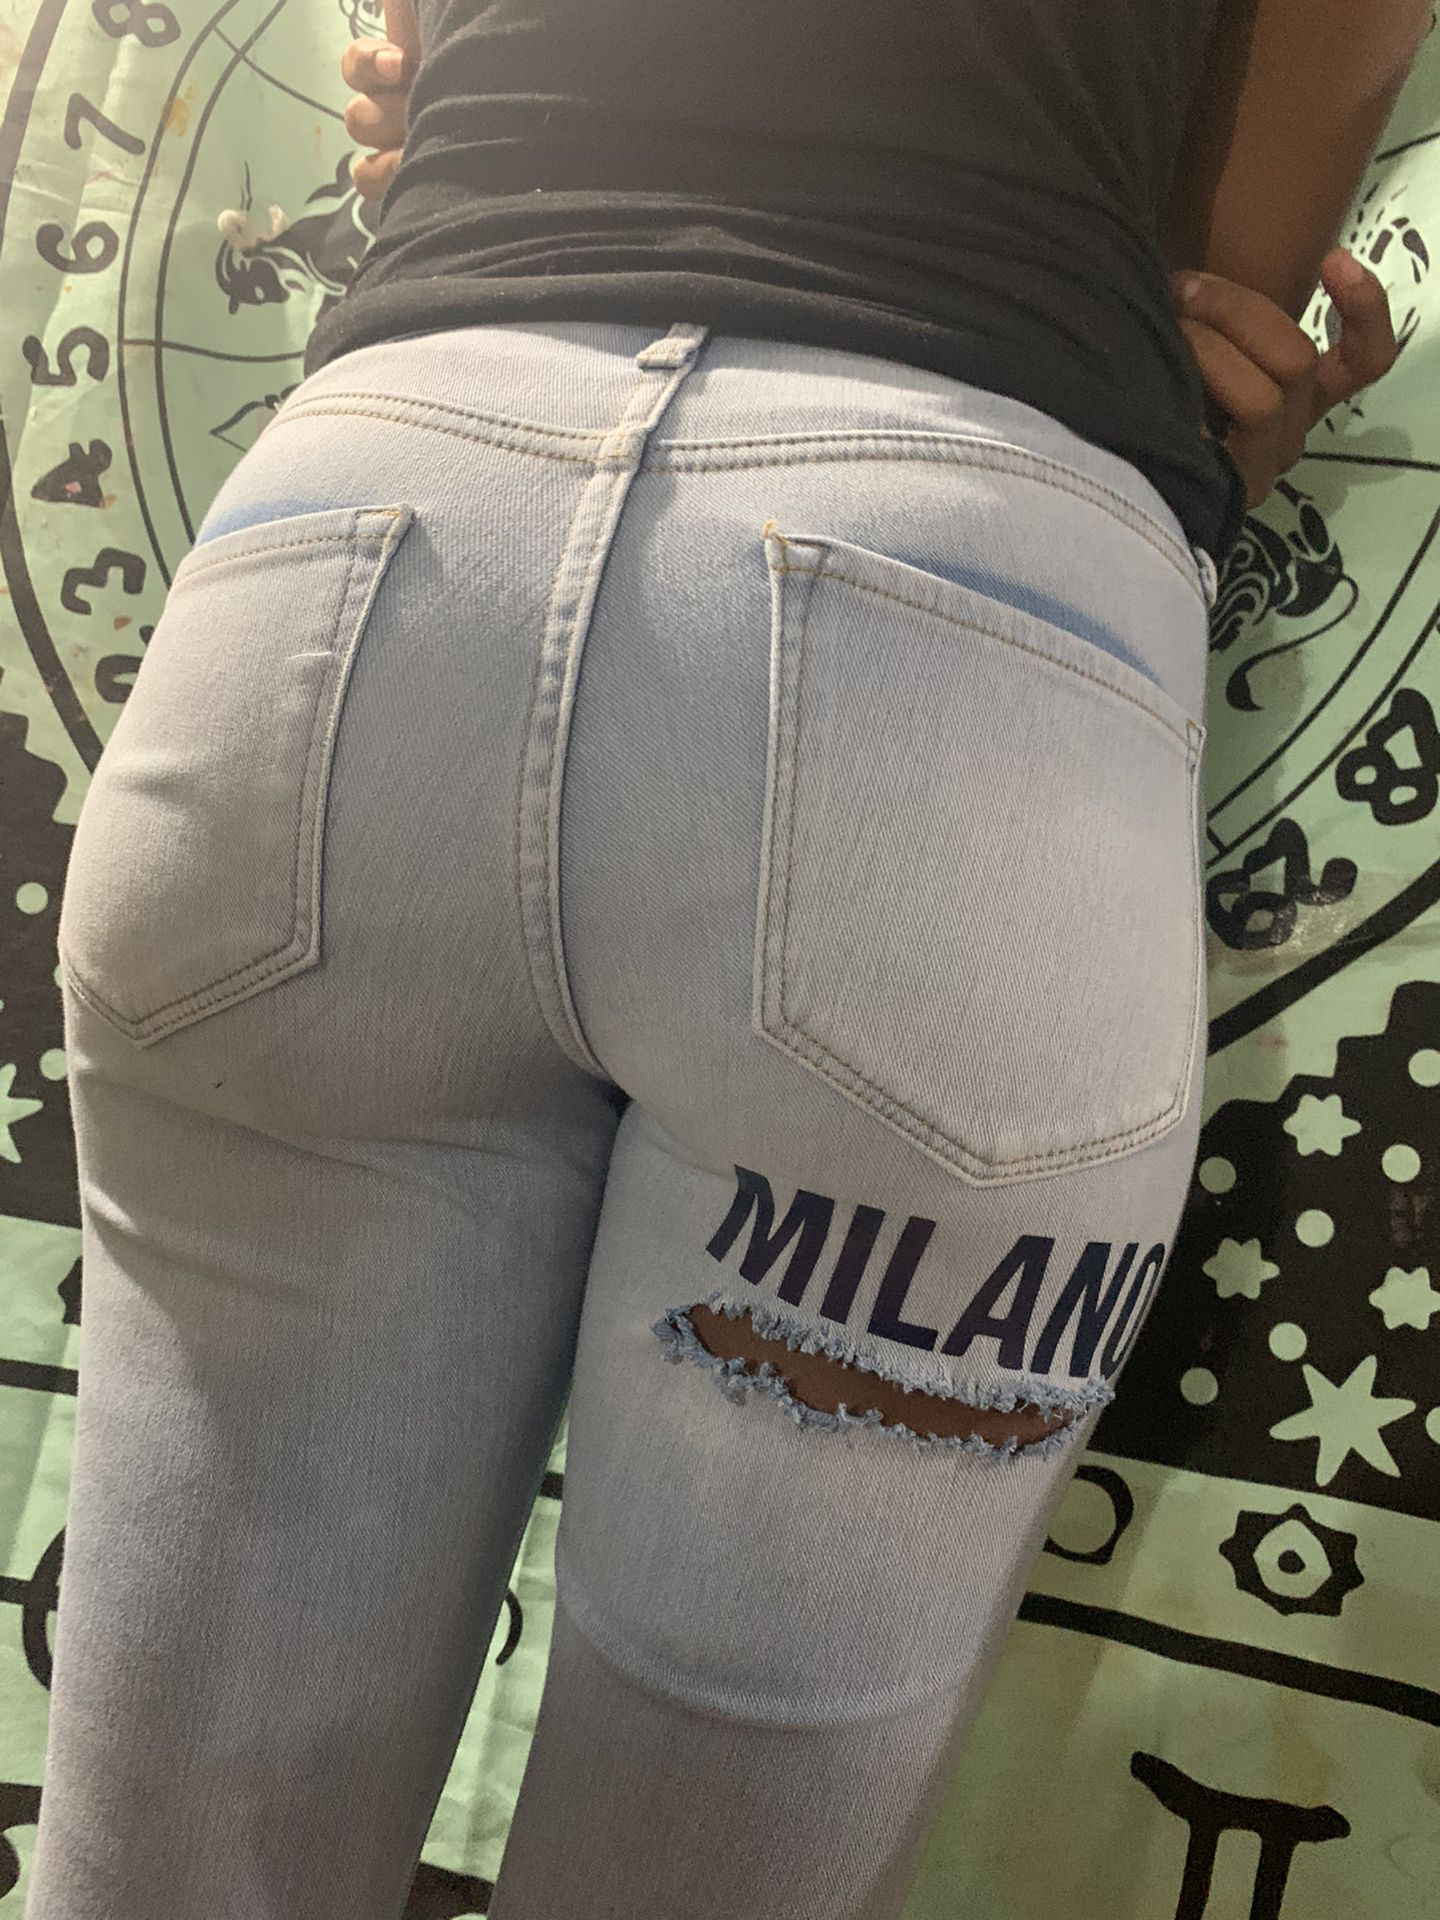 Patched jeans by me